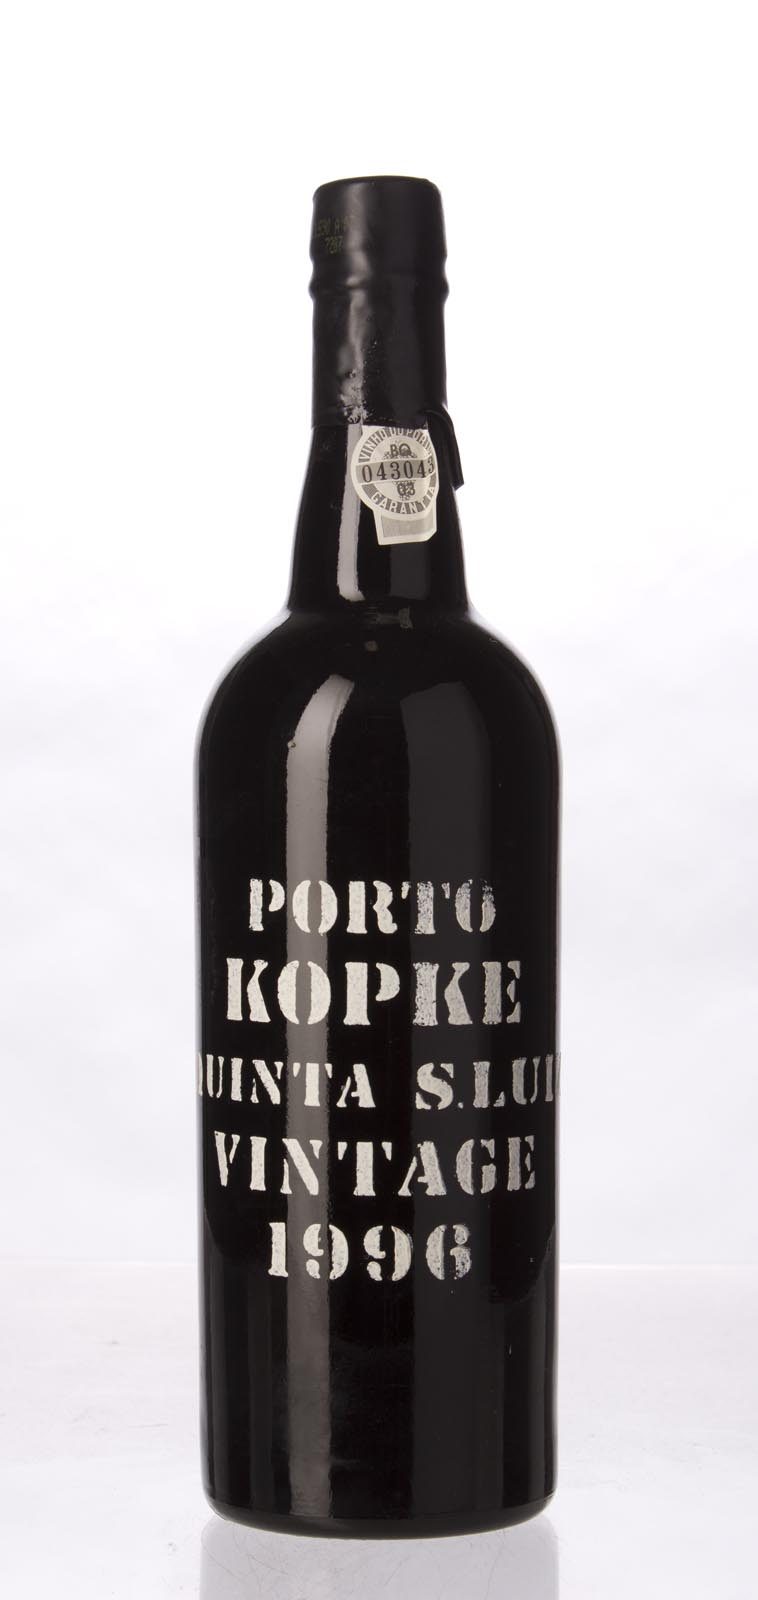 Kopke Qiuinta Sao Luiz Vintage Port 1996, 750mL () from The BPW - Merchants of rare and fine wines.